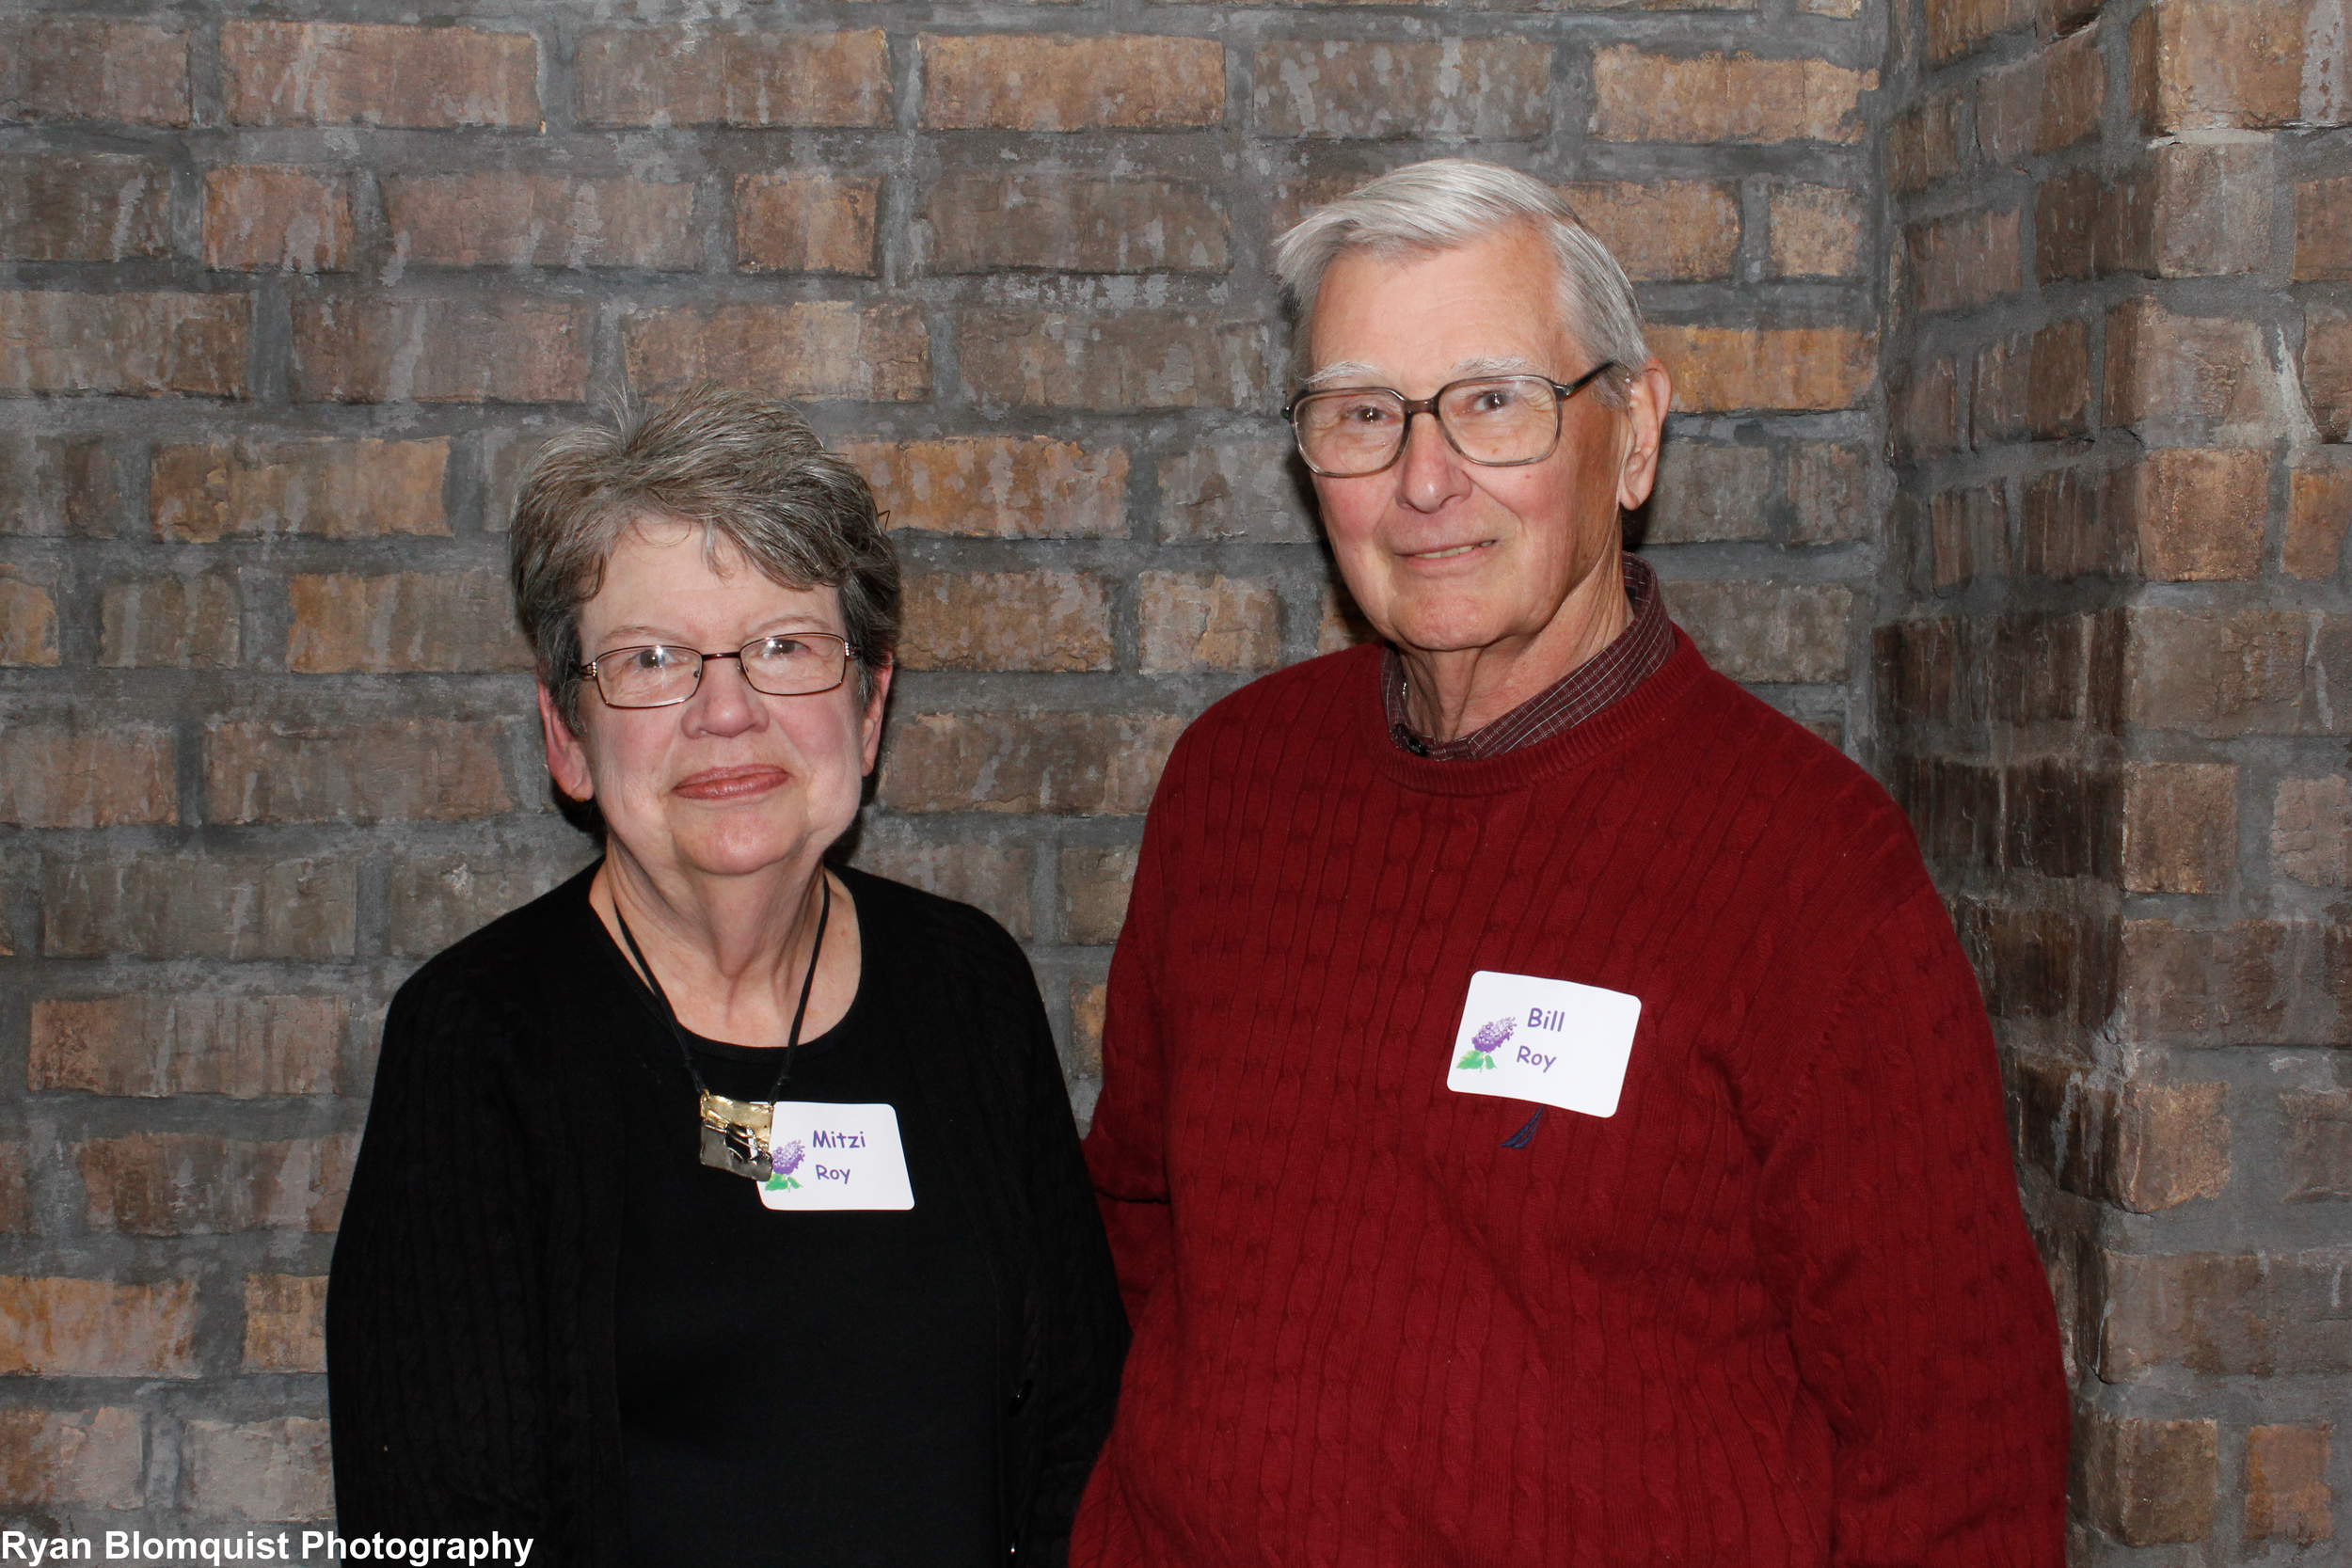 Bill and Mitzi at the Gathering's 2012 volunteer event